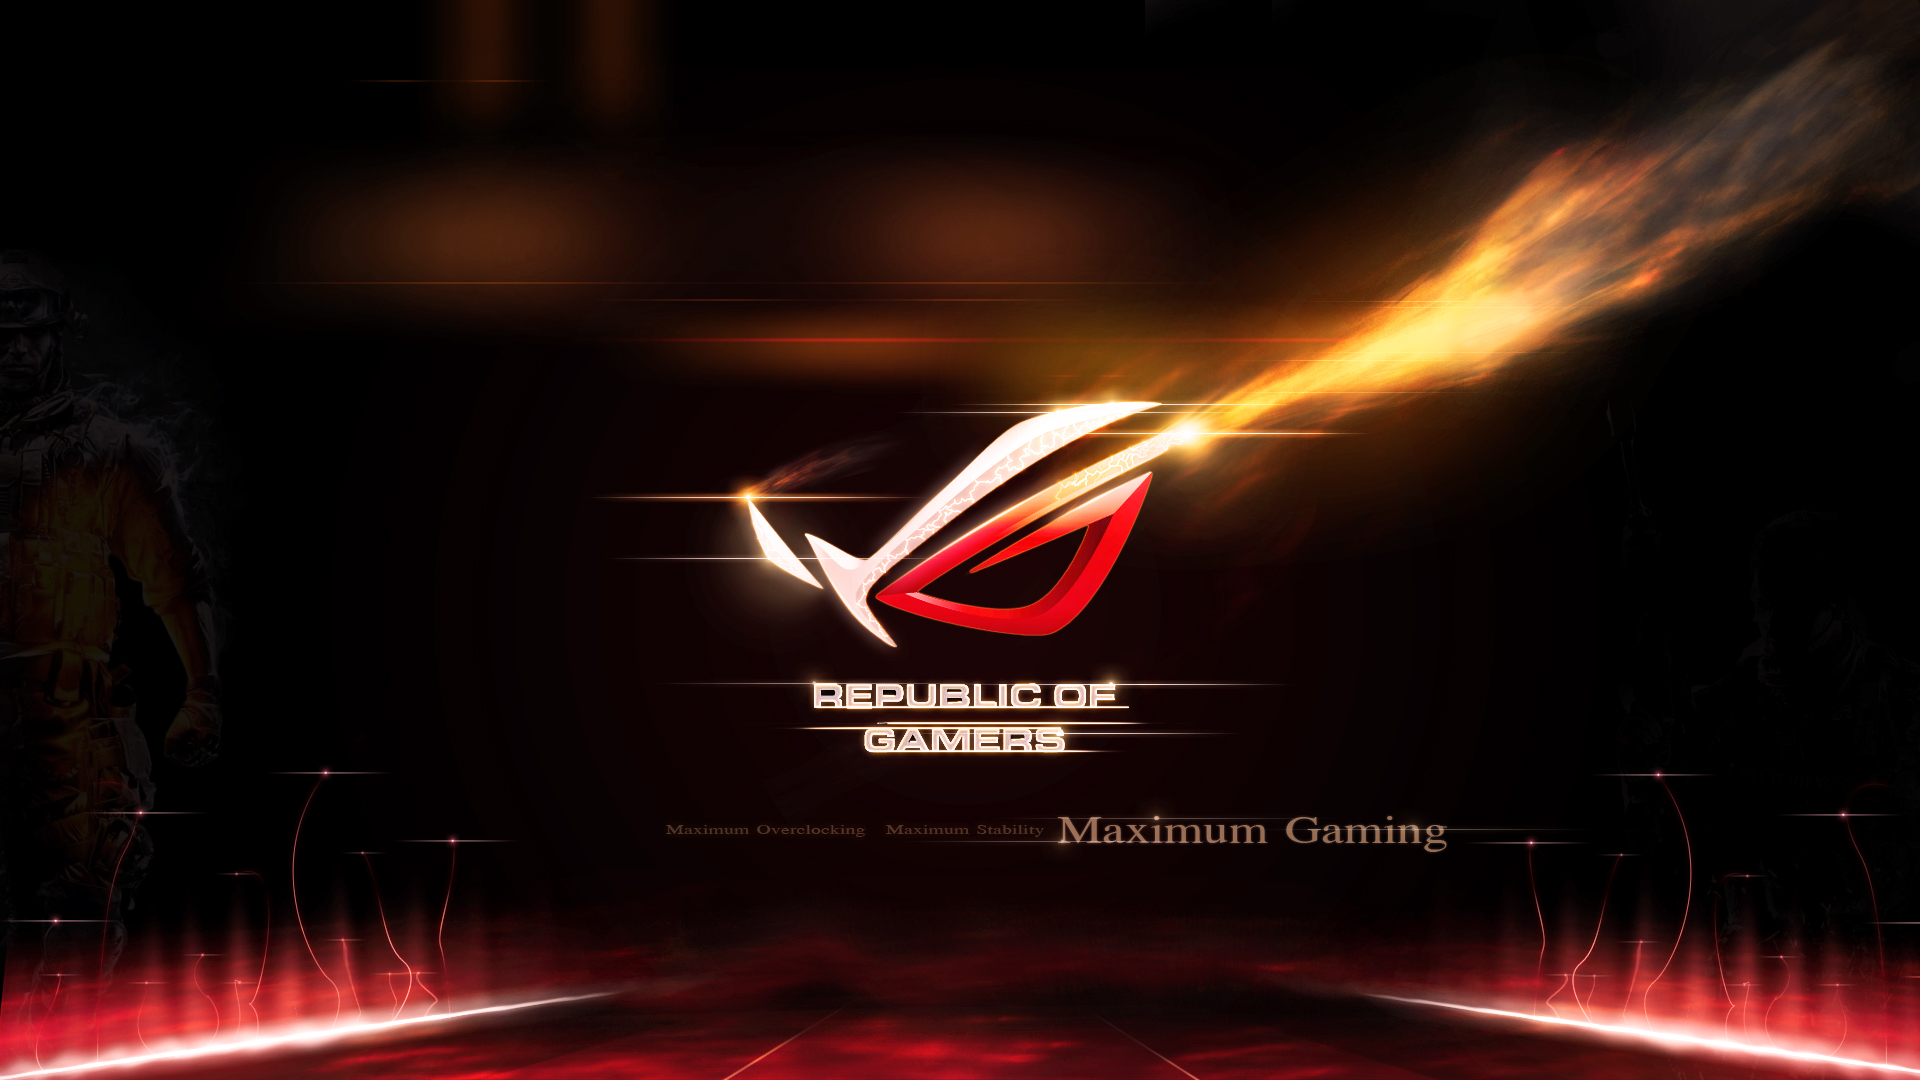 download gaming wallpapers favorite competition wallpaper 1920x1080